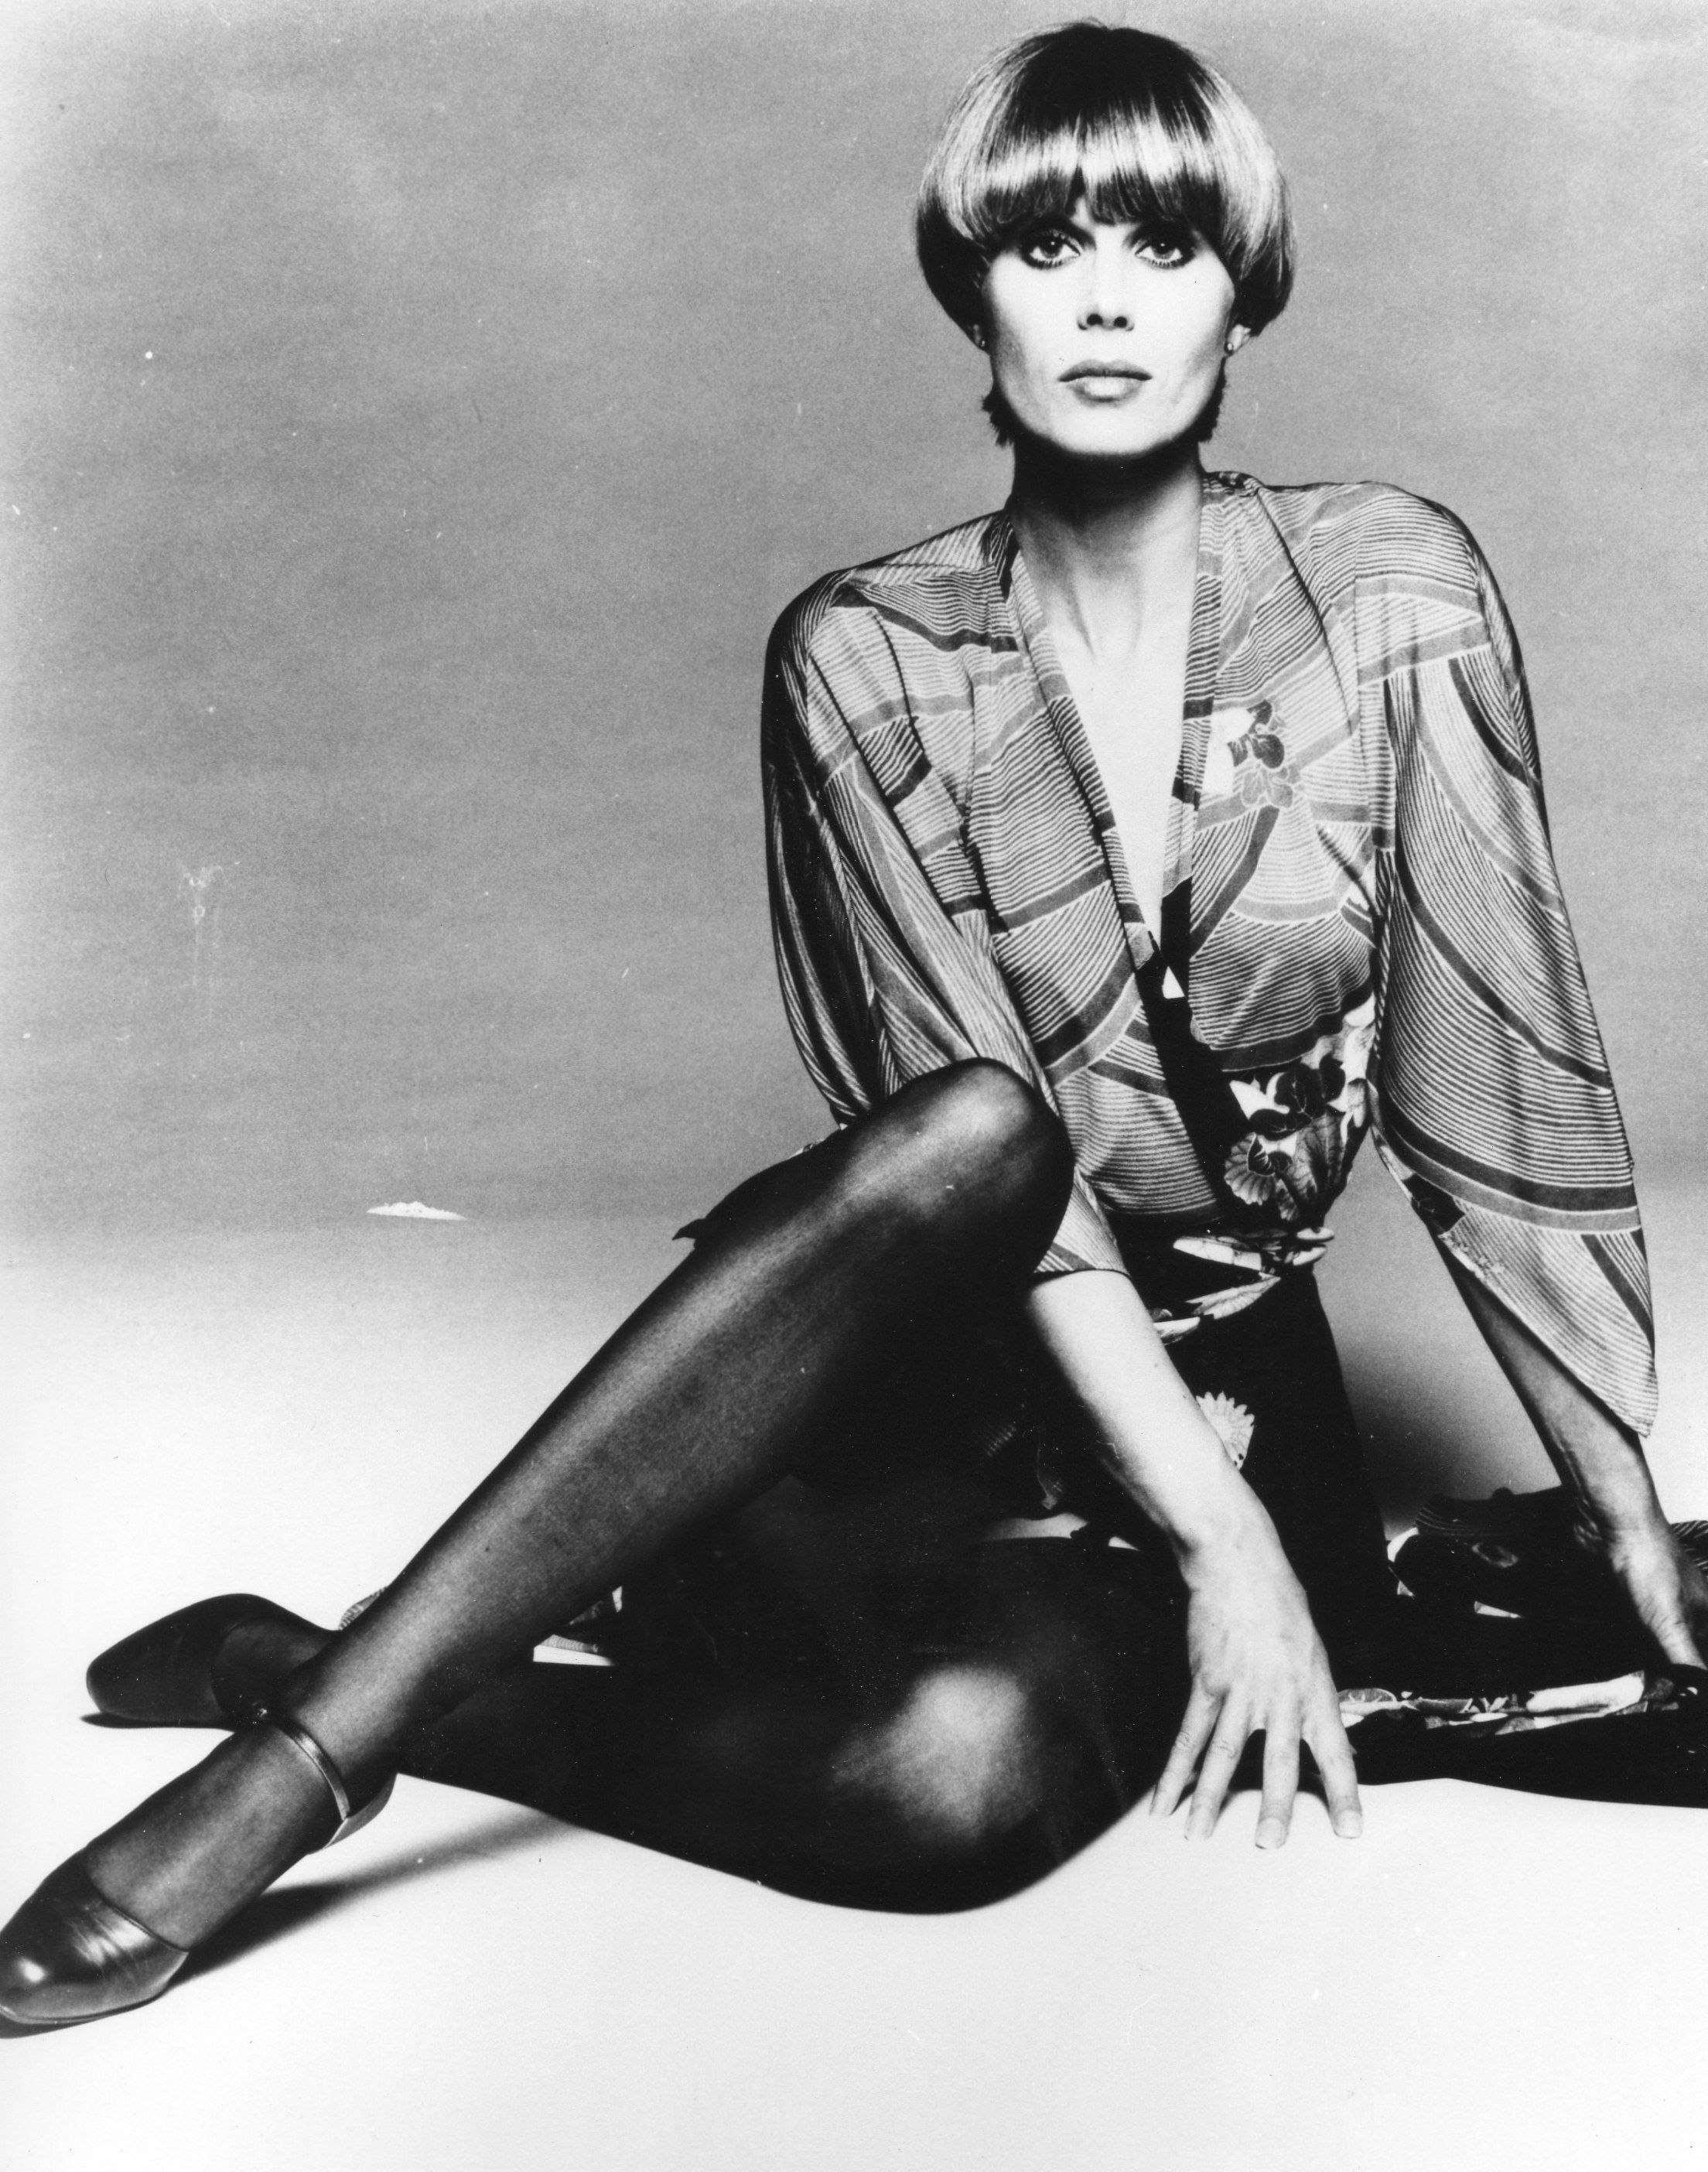 Pin by Glen Absher on Avengers, The | Joanna lumley young ...